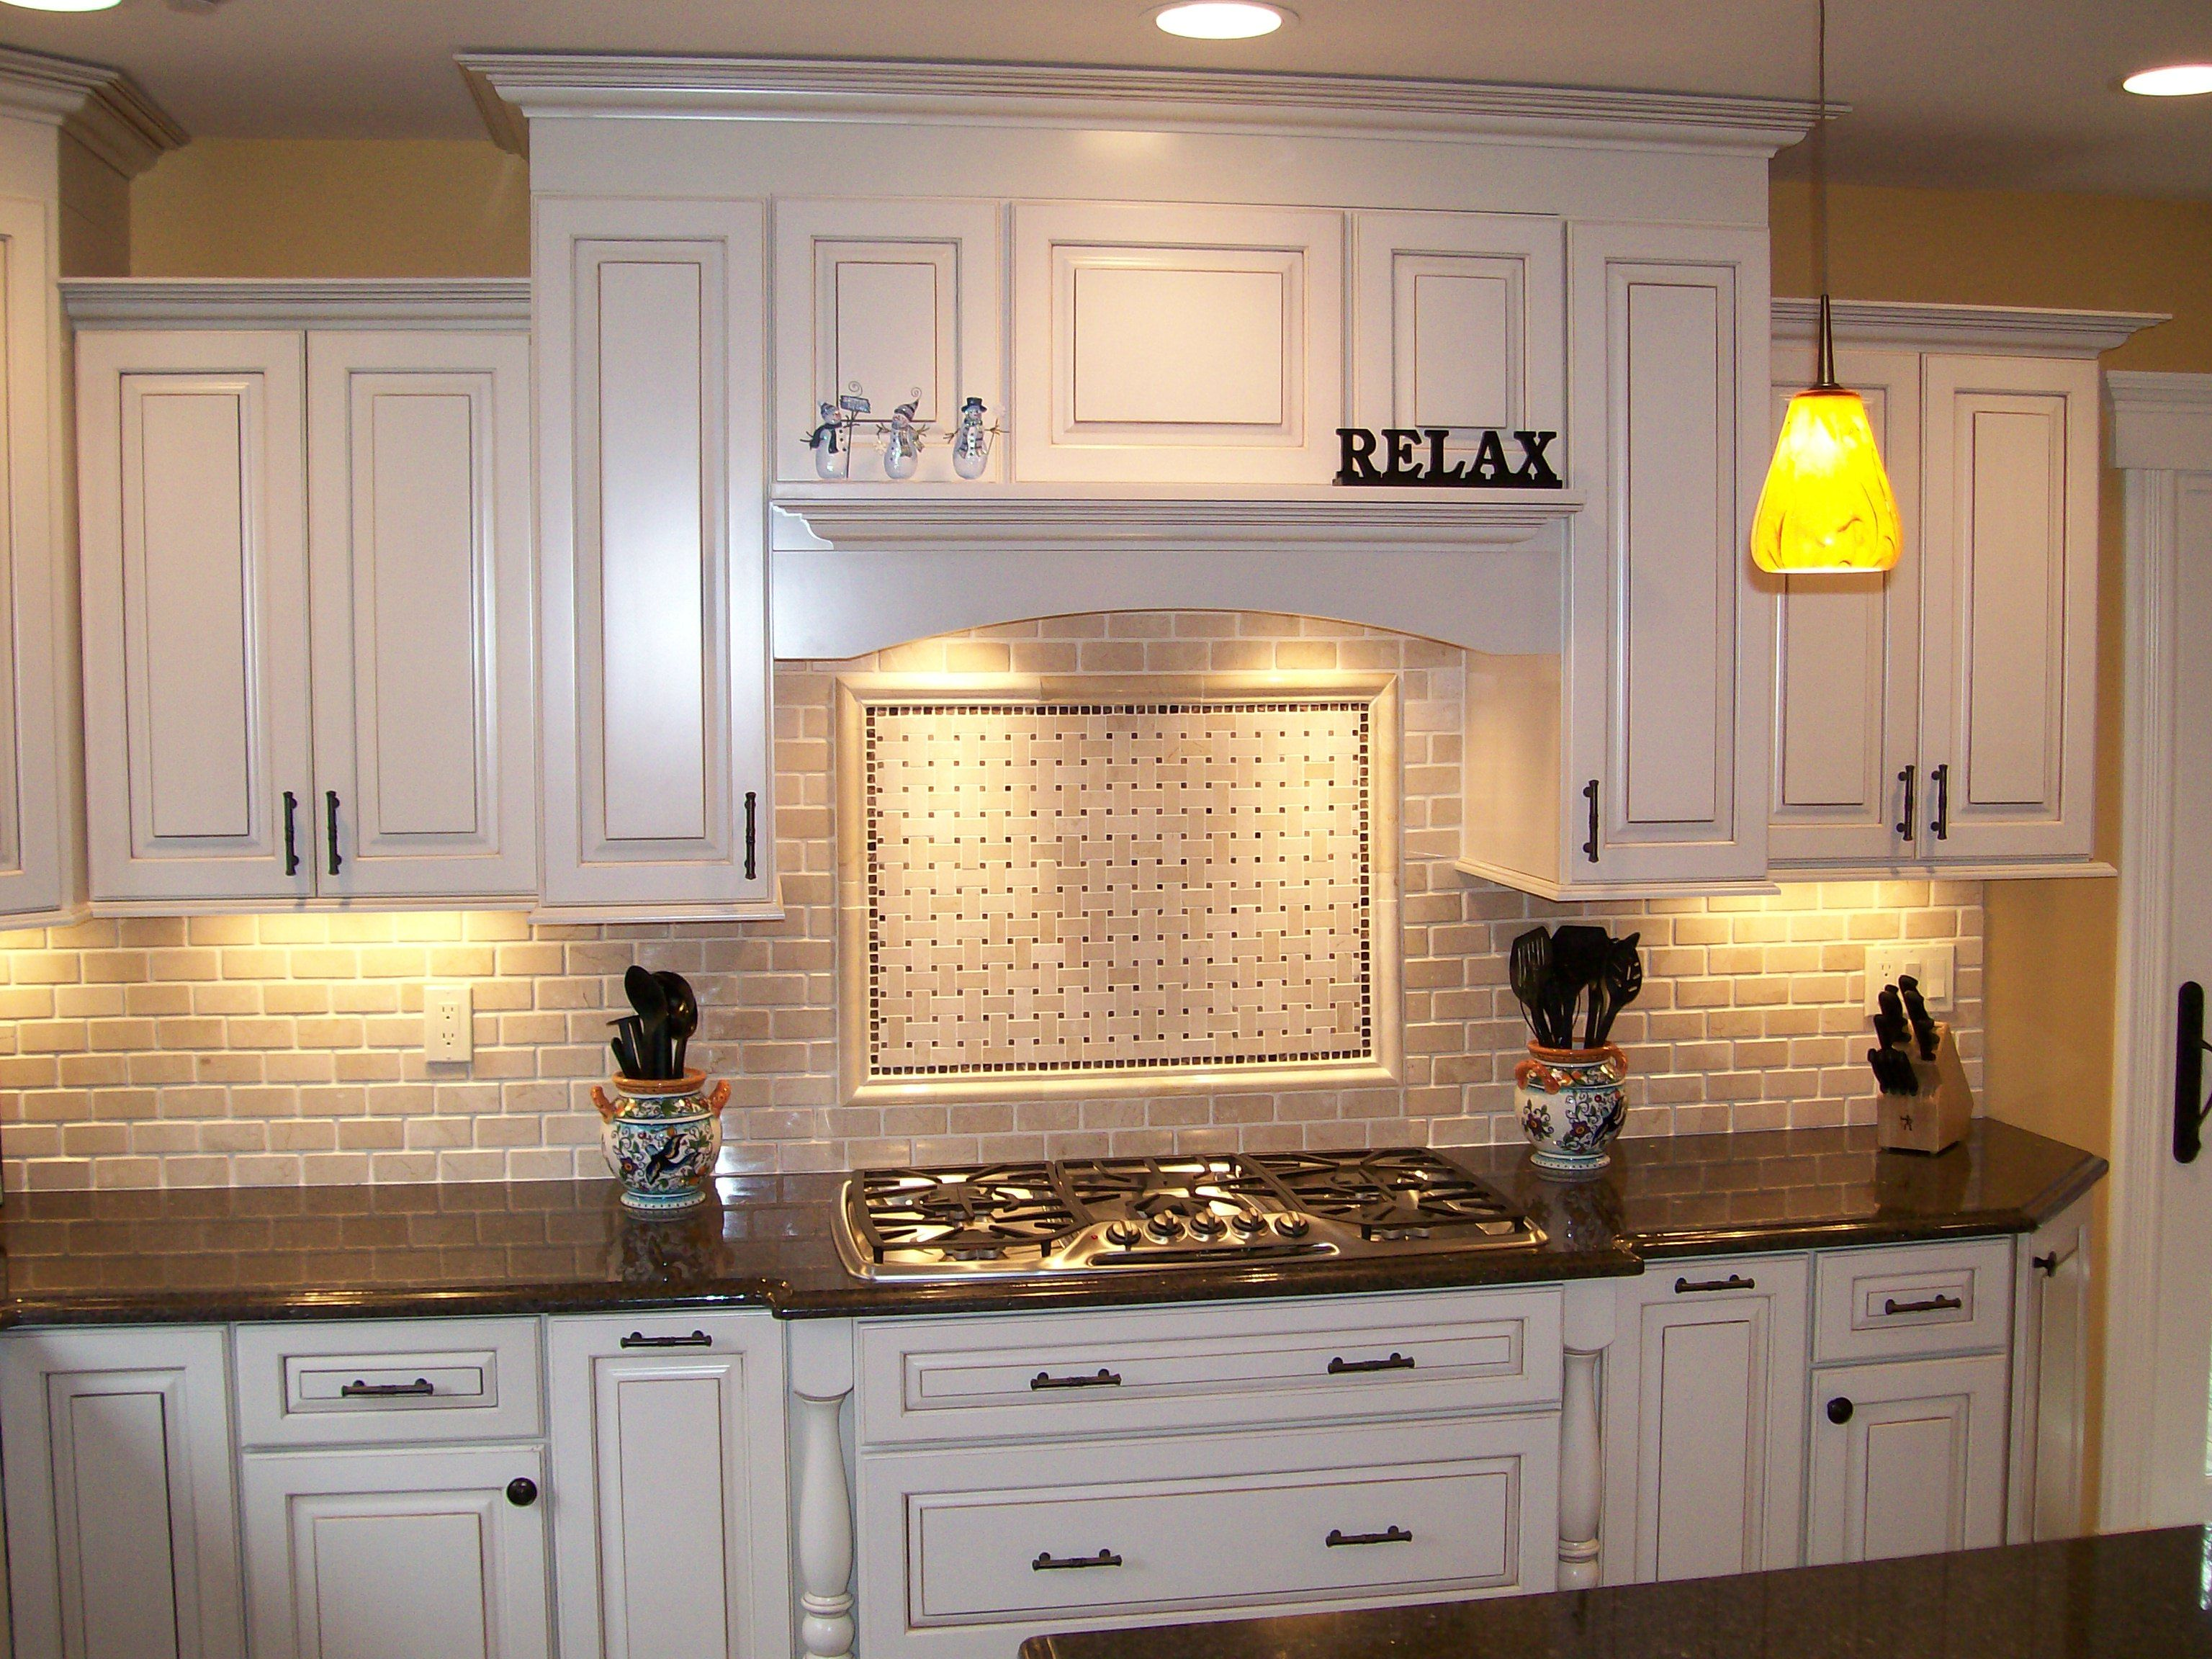 kitchen, nice brick backsplash in kitchen with white cabinet and